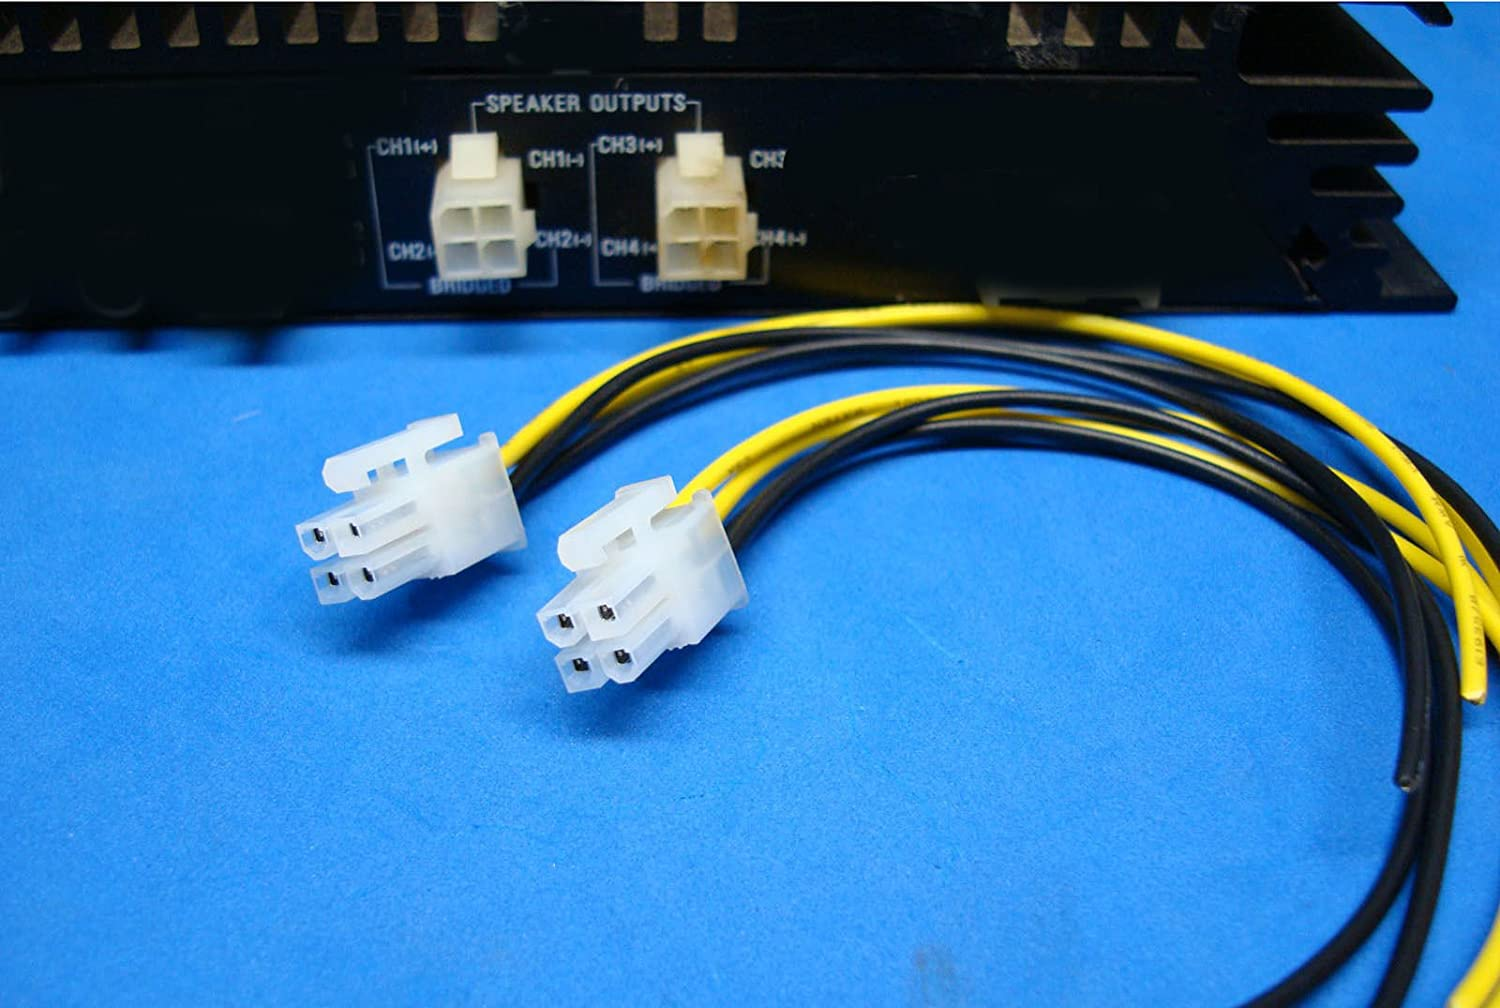 Wiring Diagram Pioneer Eq 4500 Chis Electrical Diagrams Amazon Com 4 Pin Wire Harness Molex Plug For Equalizer Rh 16 Radio